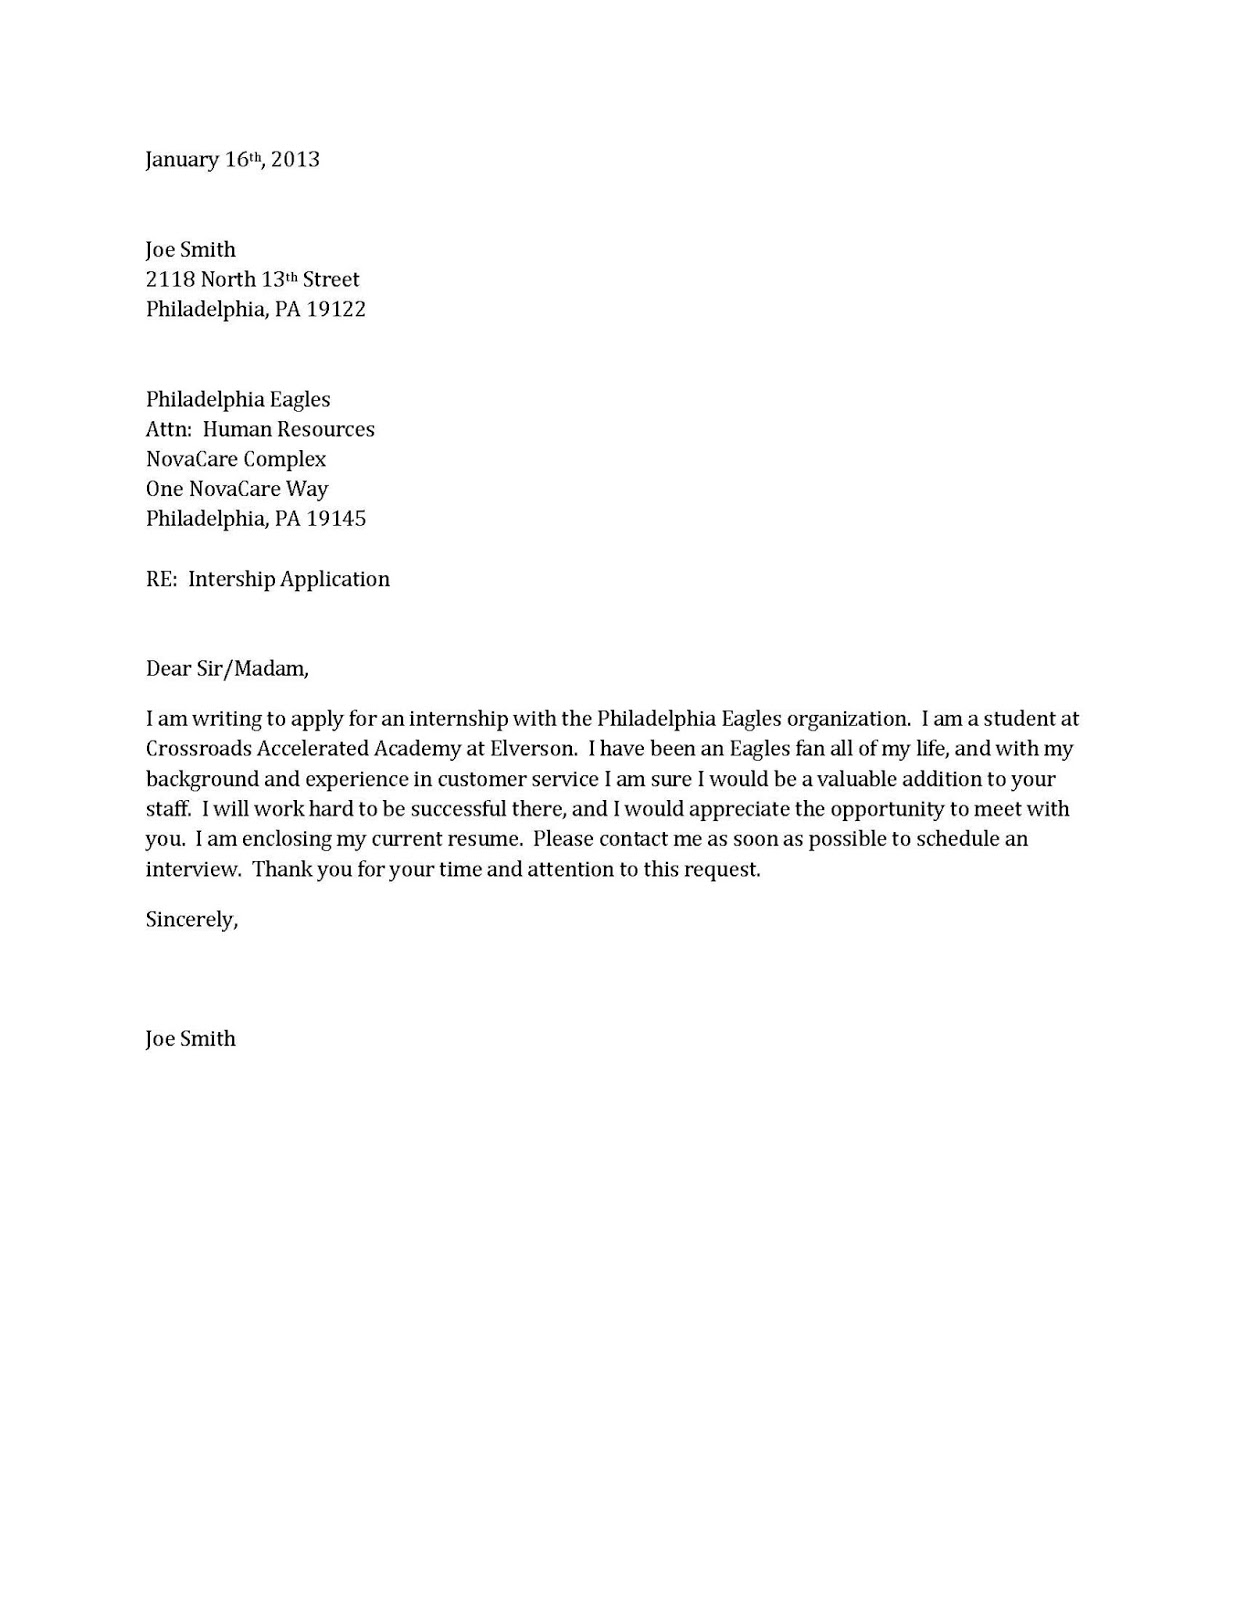 generic resume cover letters samples hepinfo net